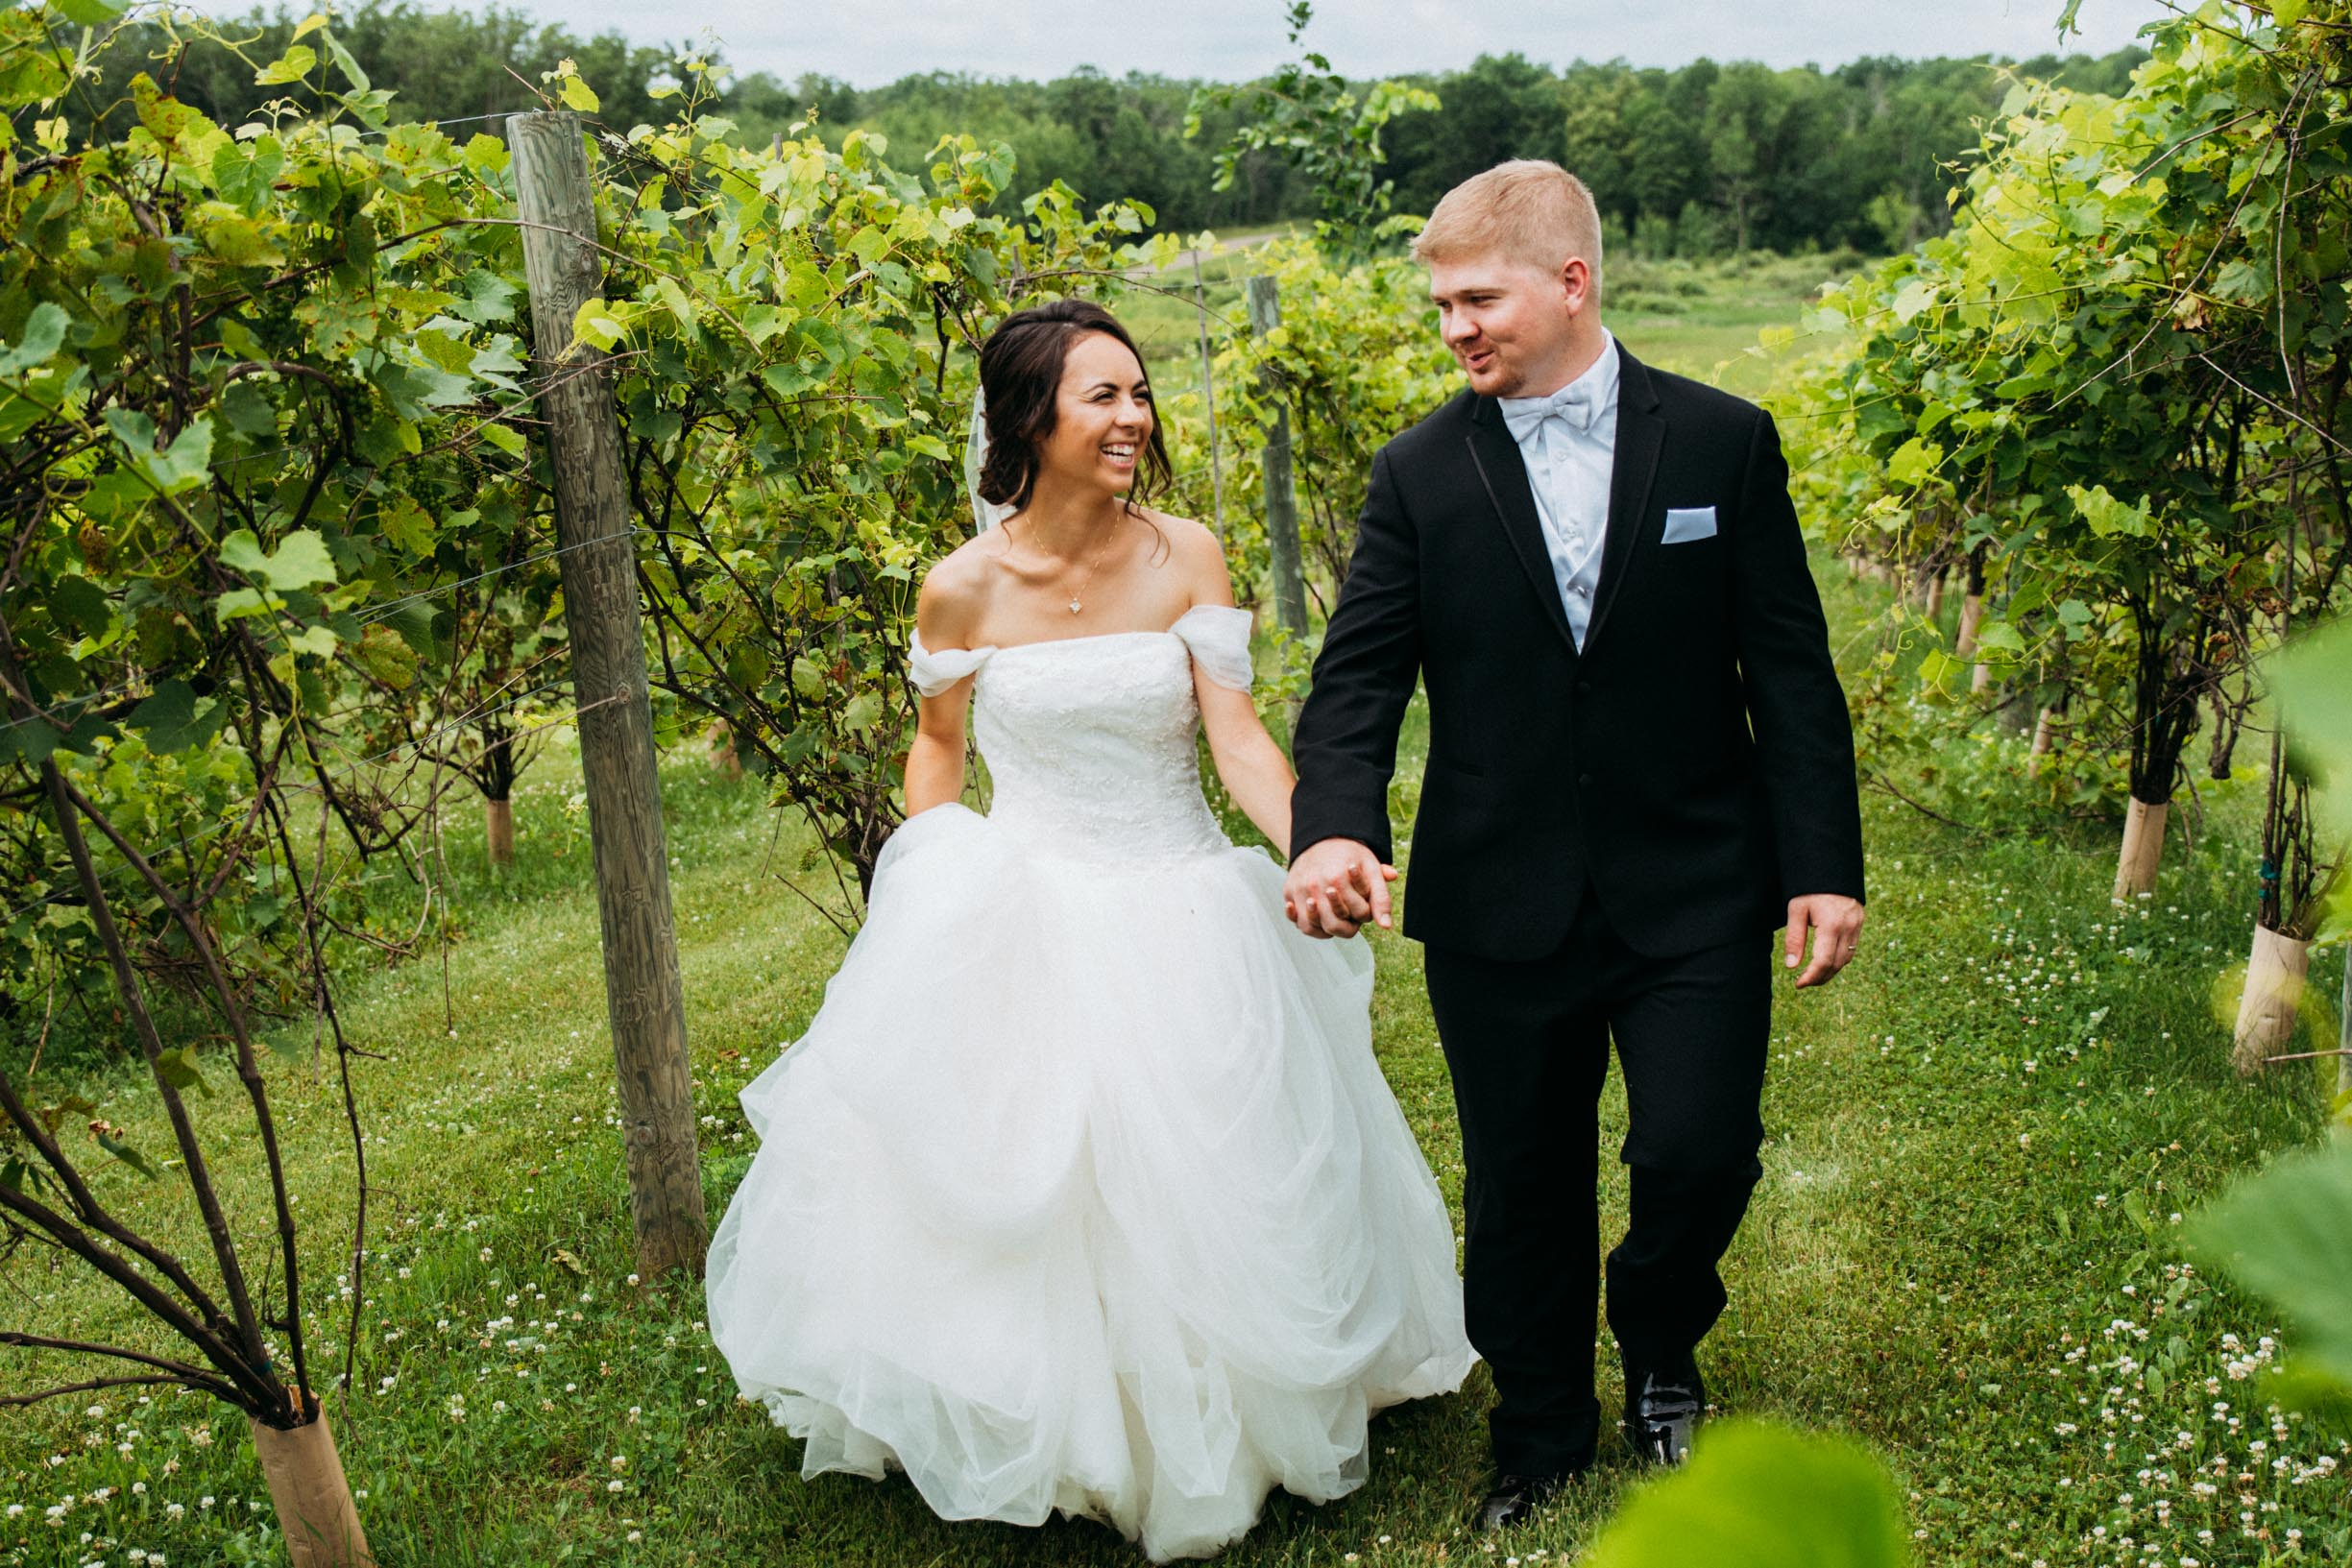 Sarah_Andy_First_Look_Vineyard_Minnesota_06.jpg